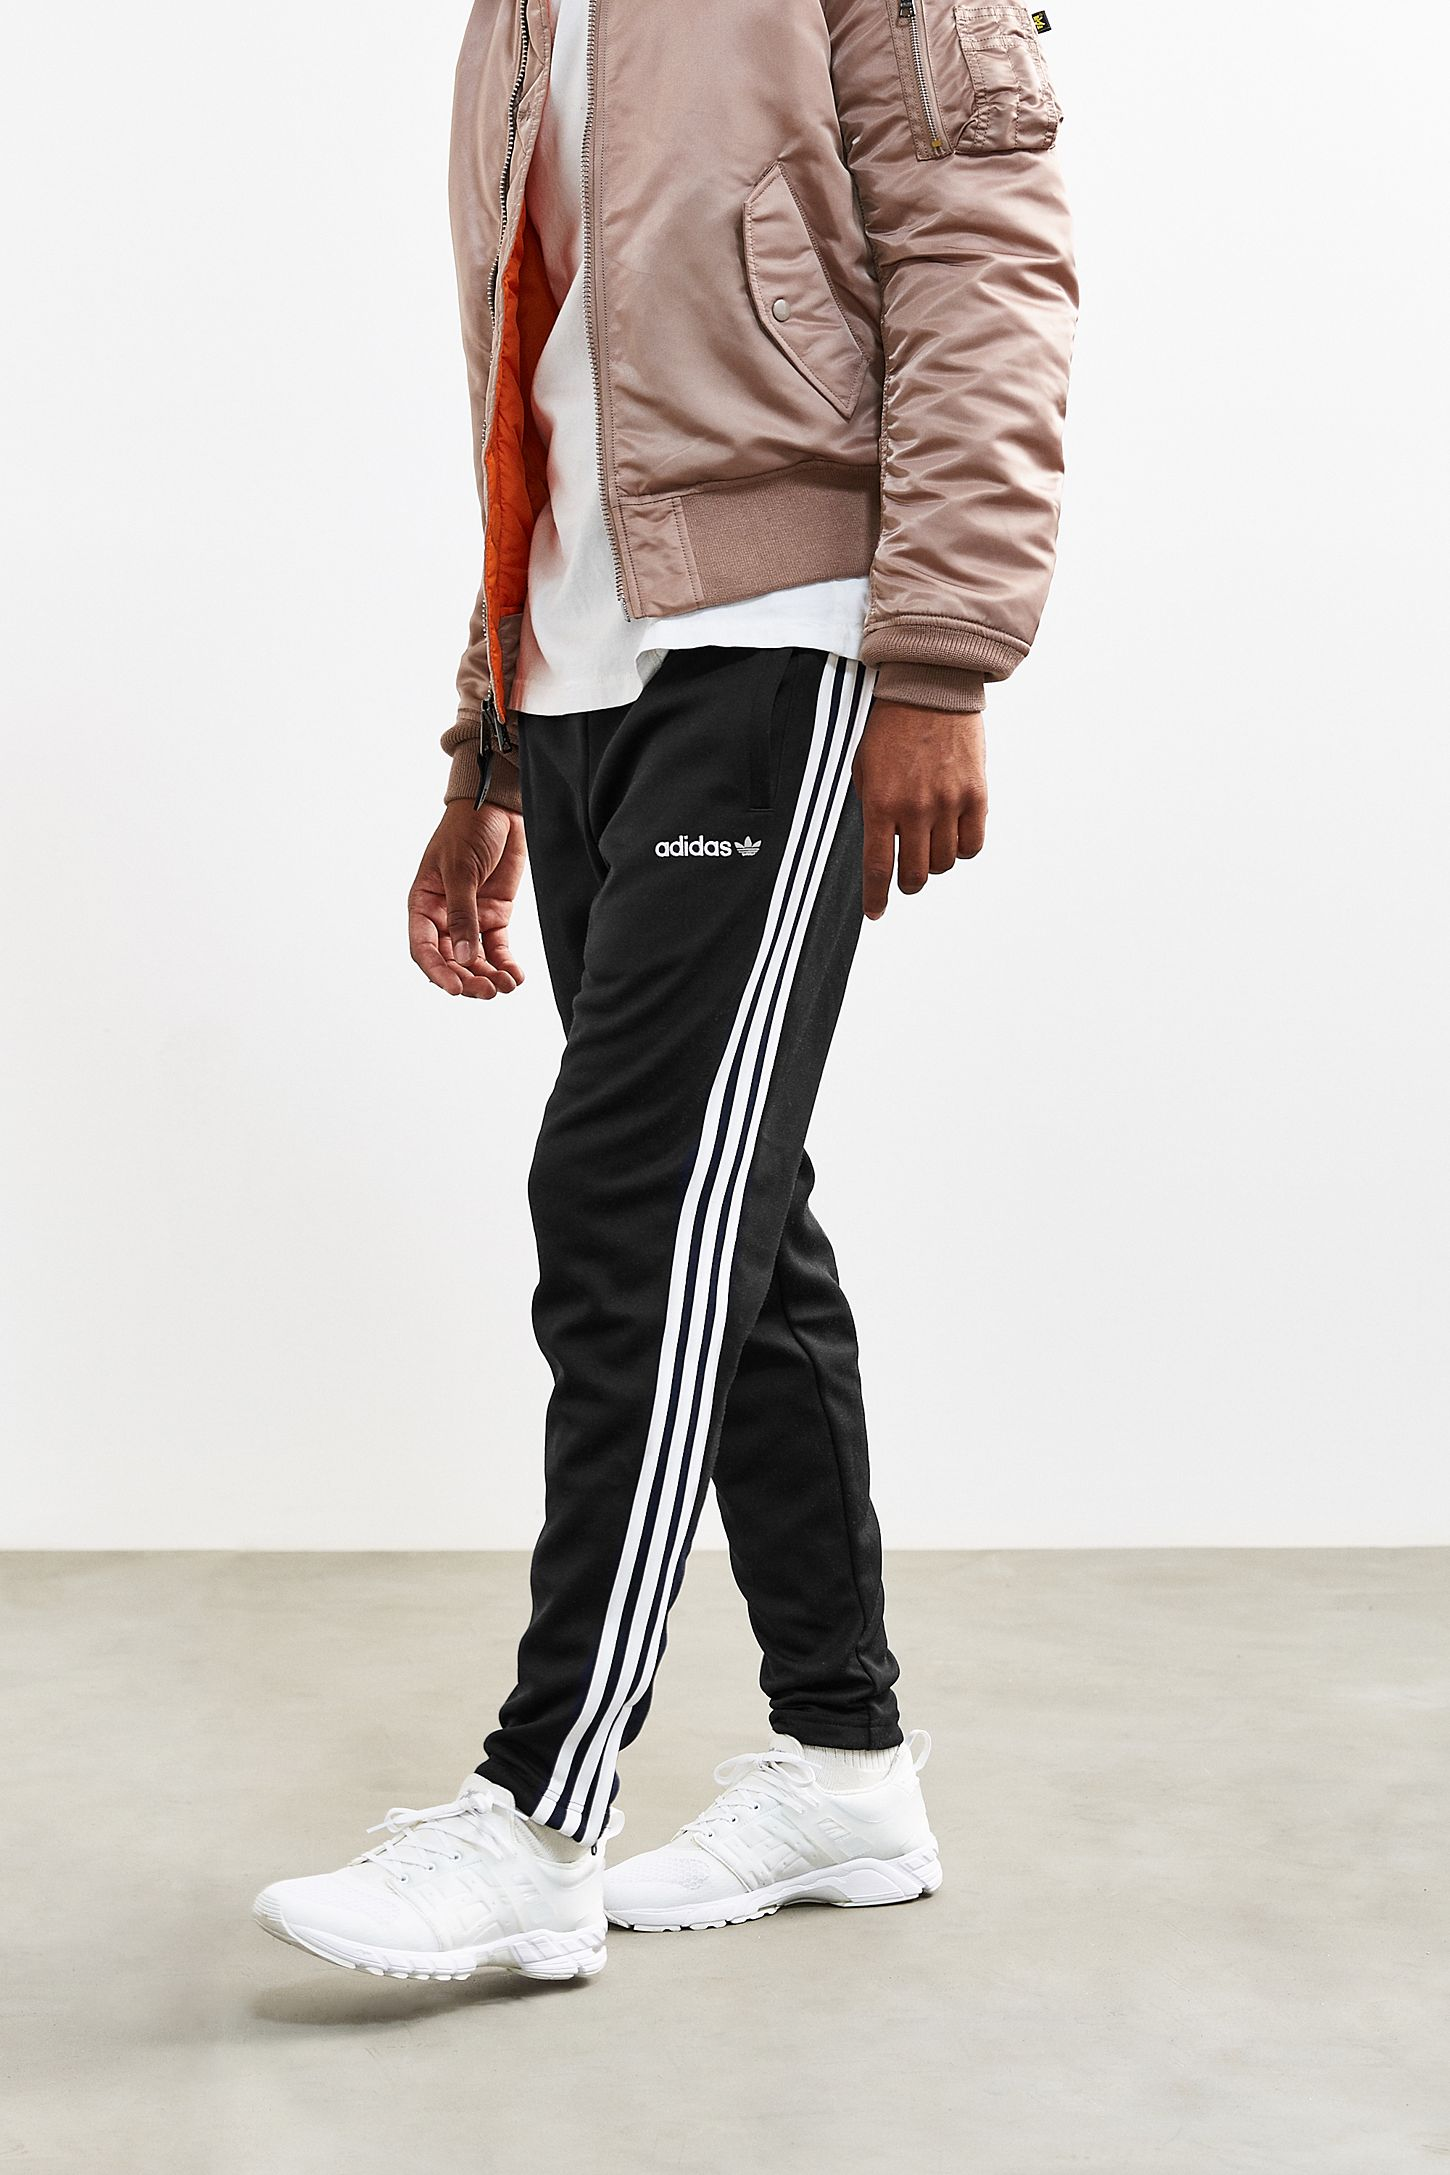 Adidas Fitted Track Pant Urban Outfitters Uo BxPBrq4W0